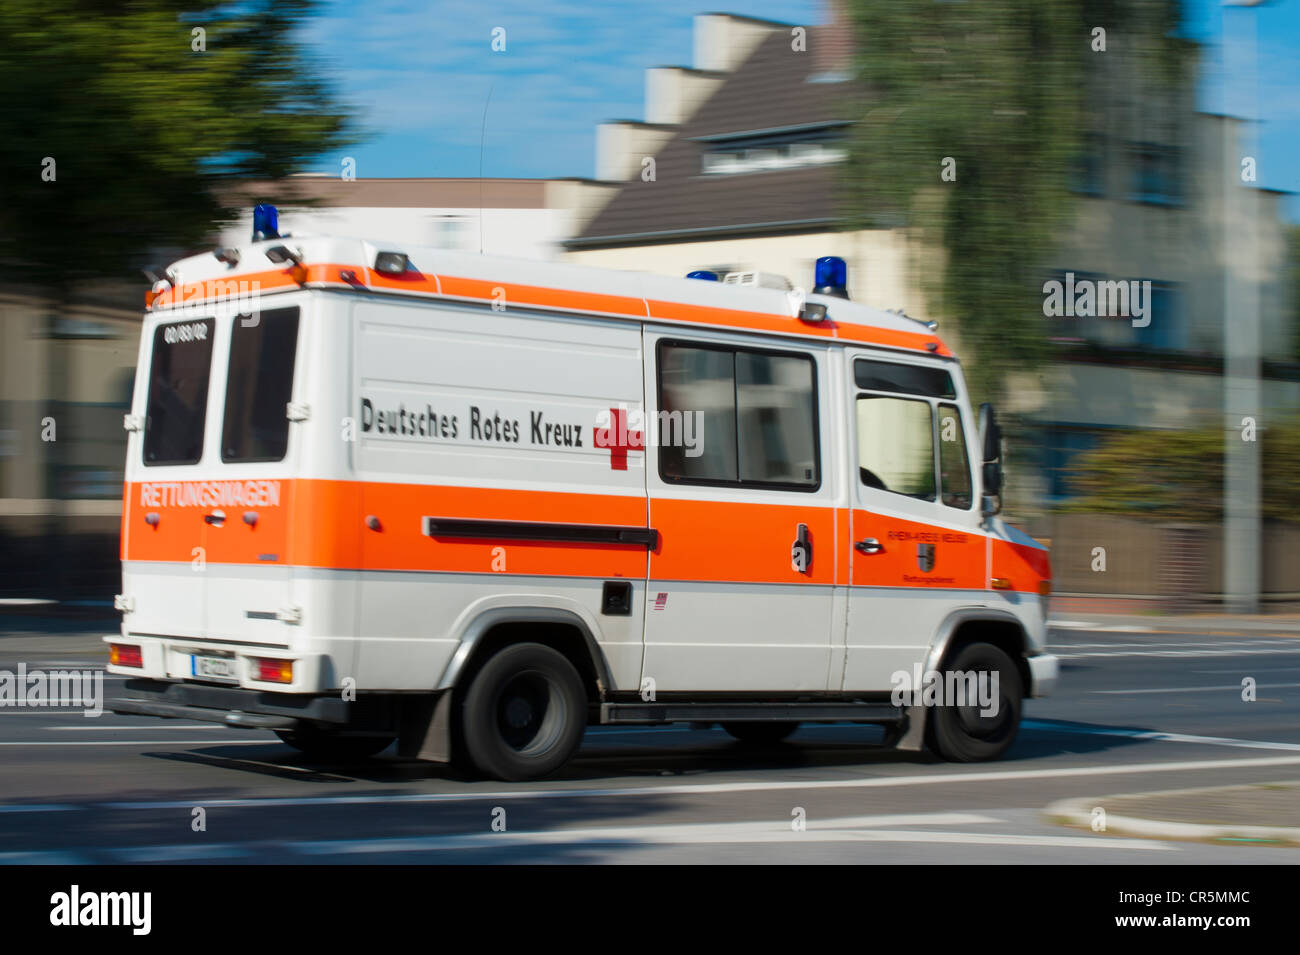 Deutsches Rotes Kreuz, German Red Cross, ambulance on an emergency call, Grevenbroich, North Rhine-Westphalia, Germany, - Stock Image